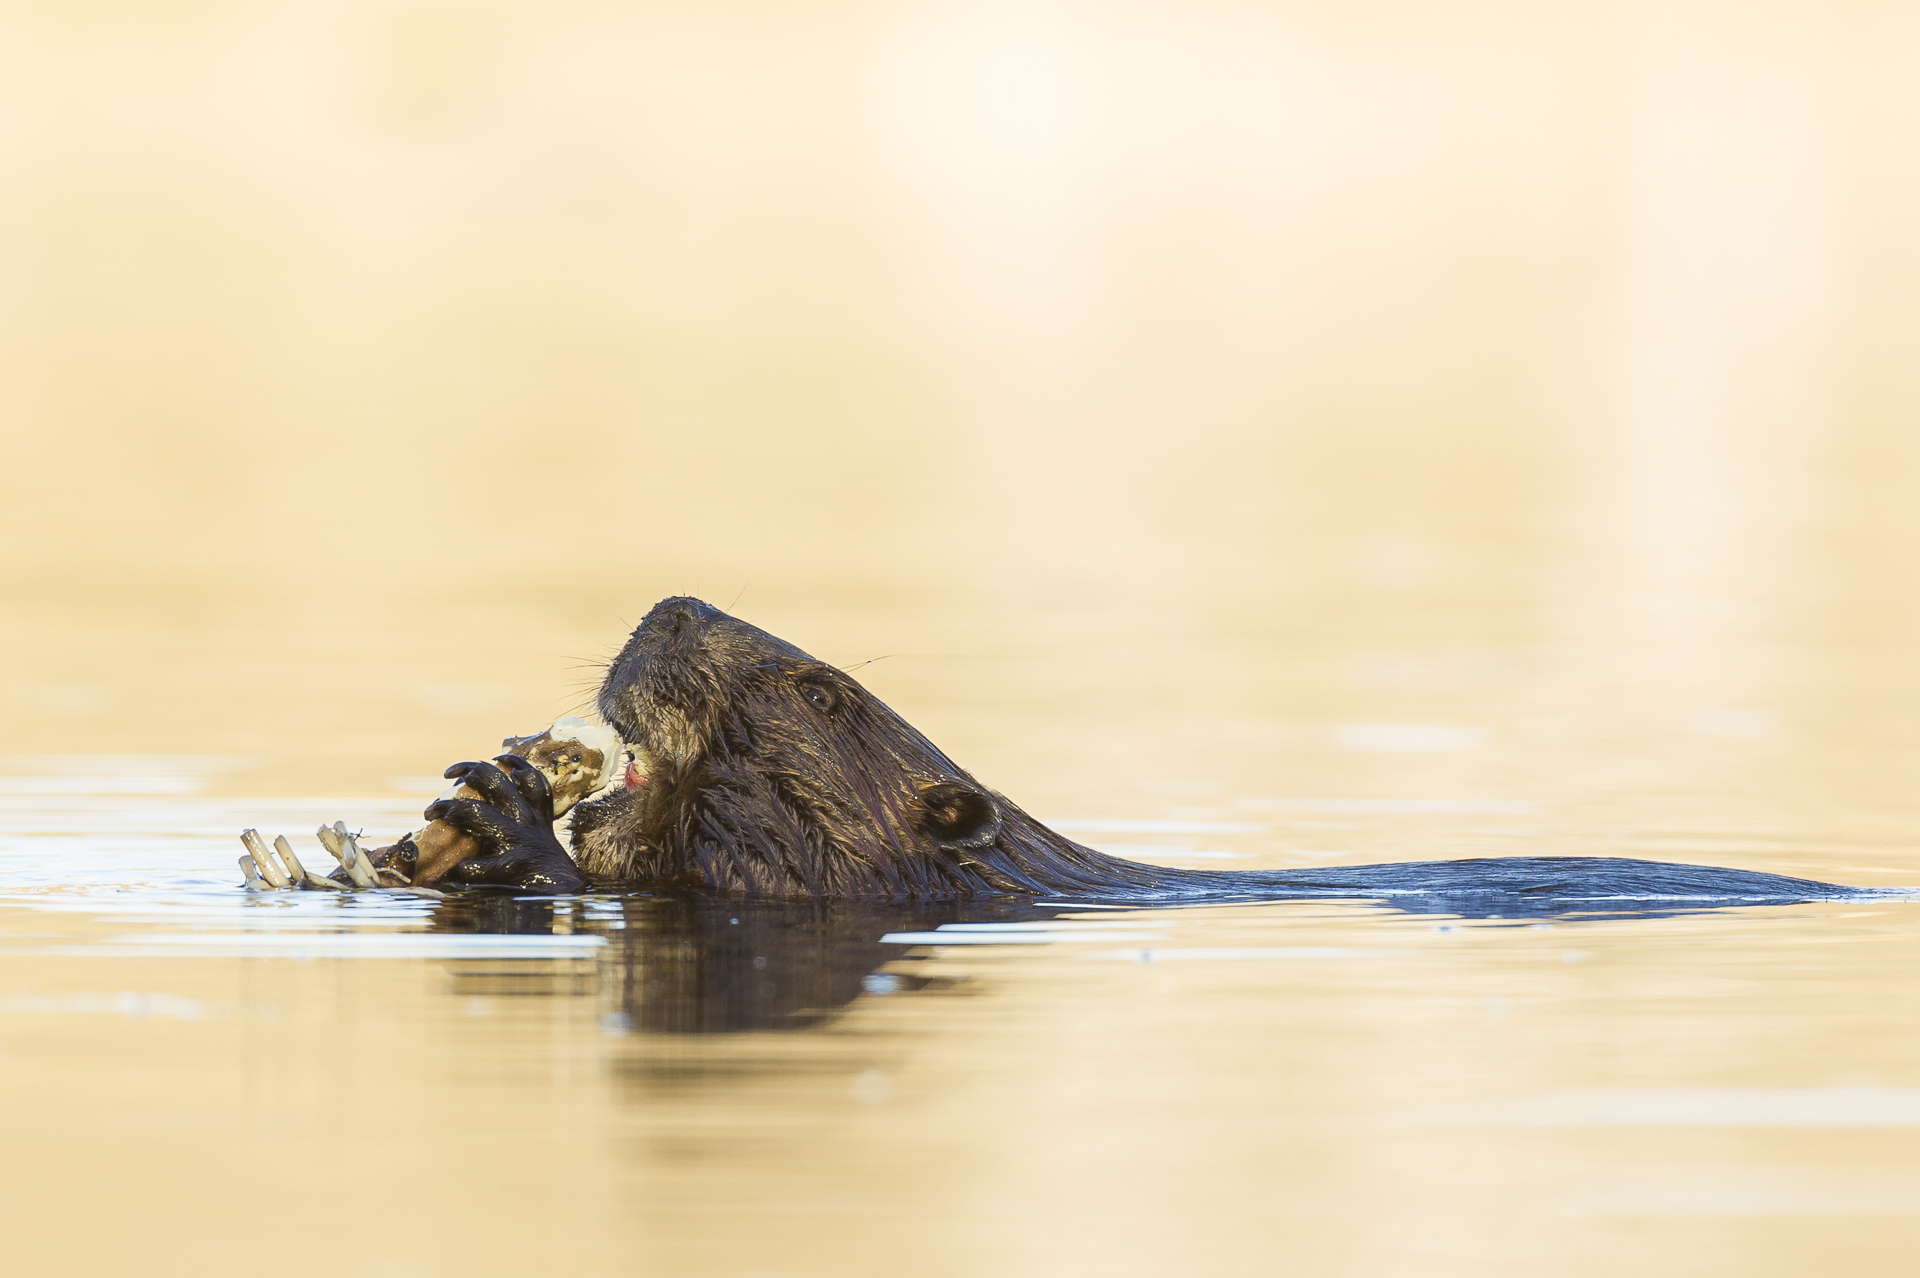 Beaver eating water lily tuber